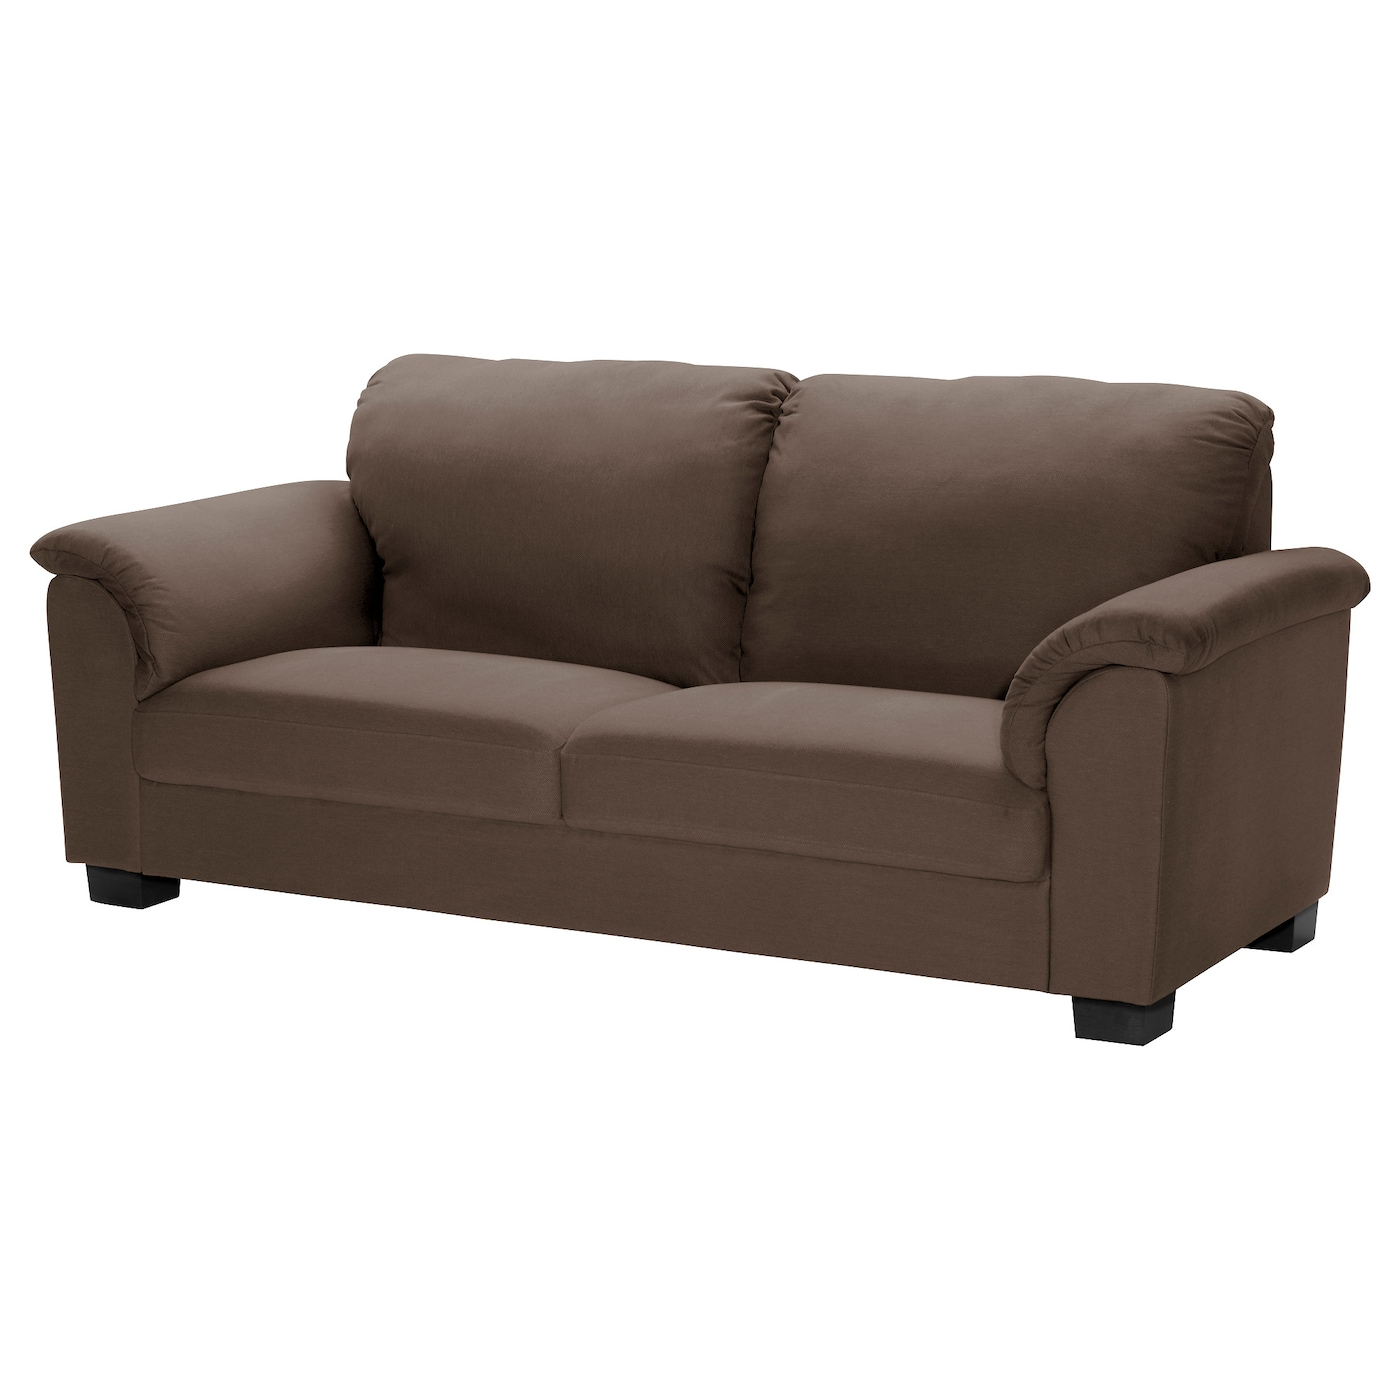 Tidafors three seat sofa dansbo medium brown ikea for Ikea sofa set